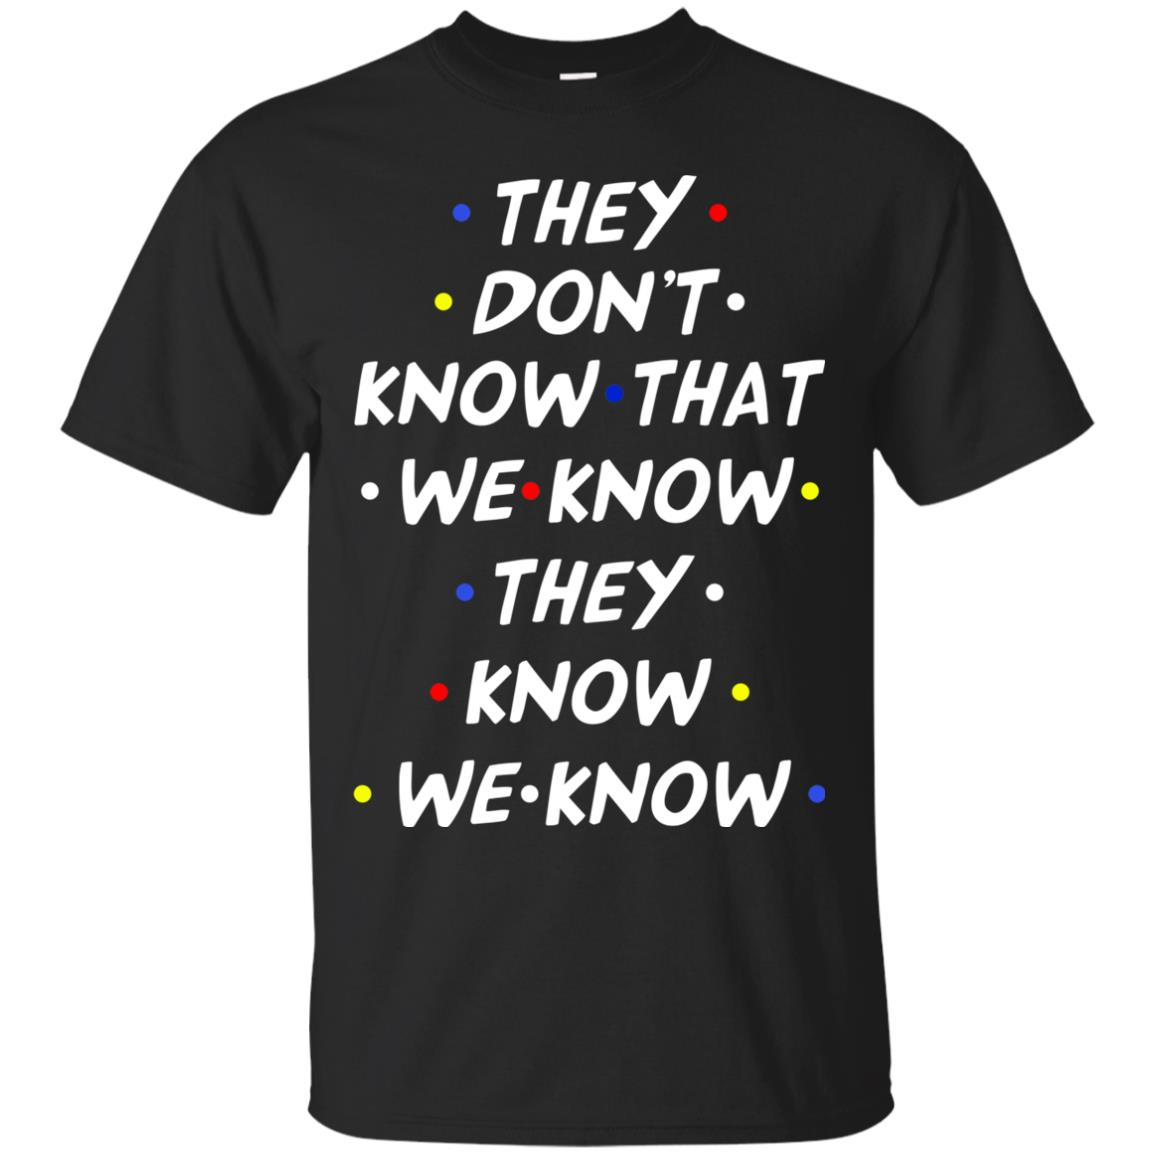 image 524px They dont know that we know they know we know shirt, hoodies, tank